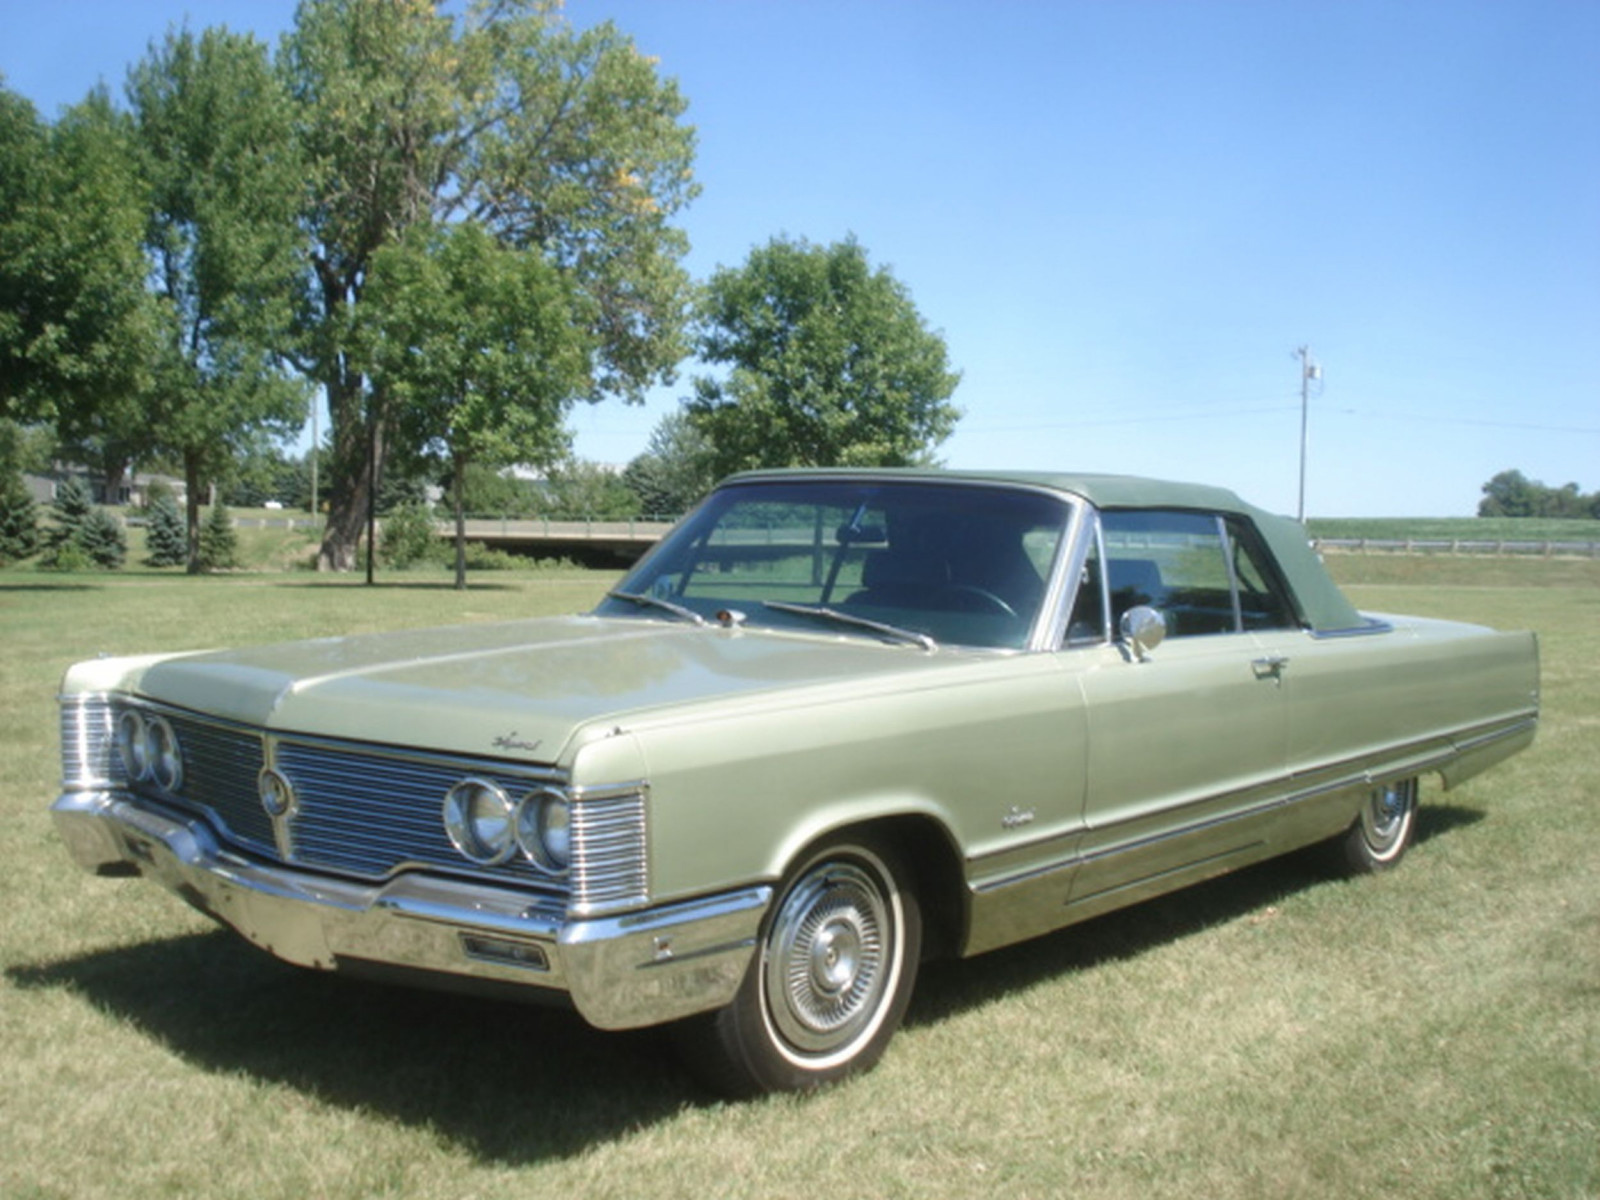 1968 Chrysler Imperial Crown Convertible - Image 8